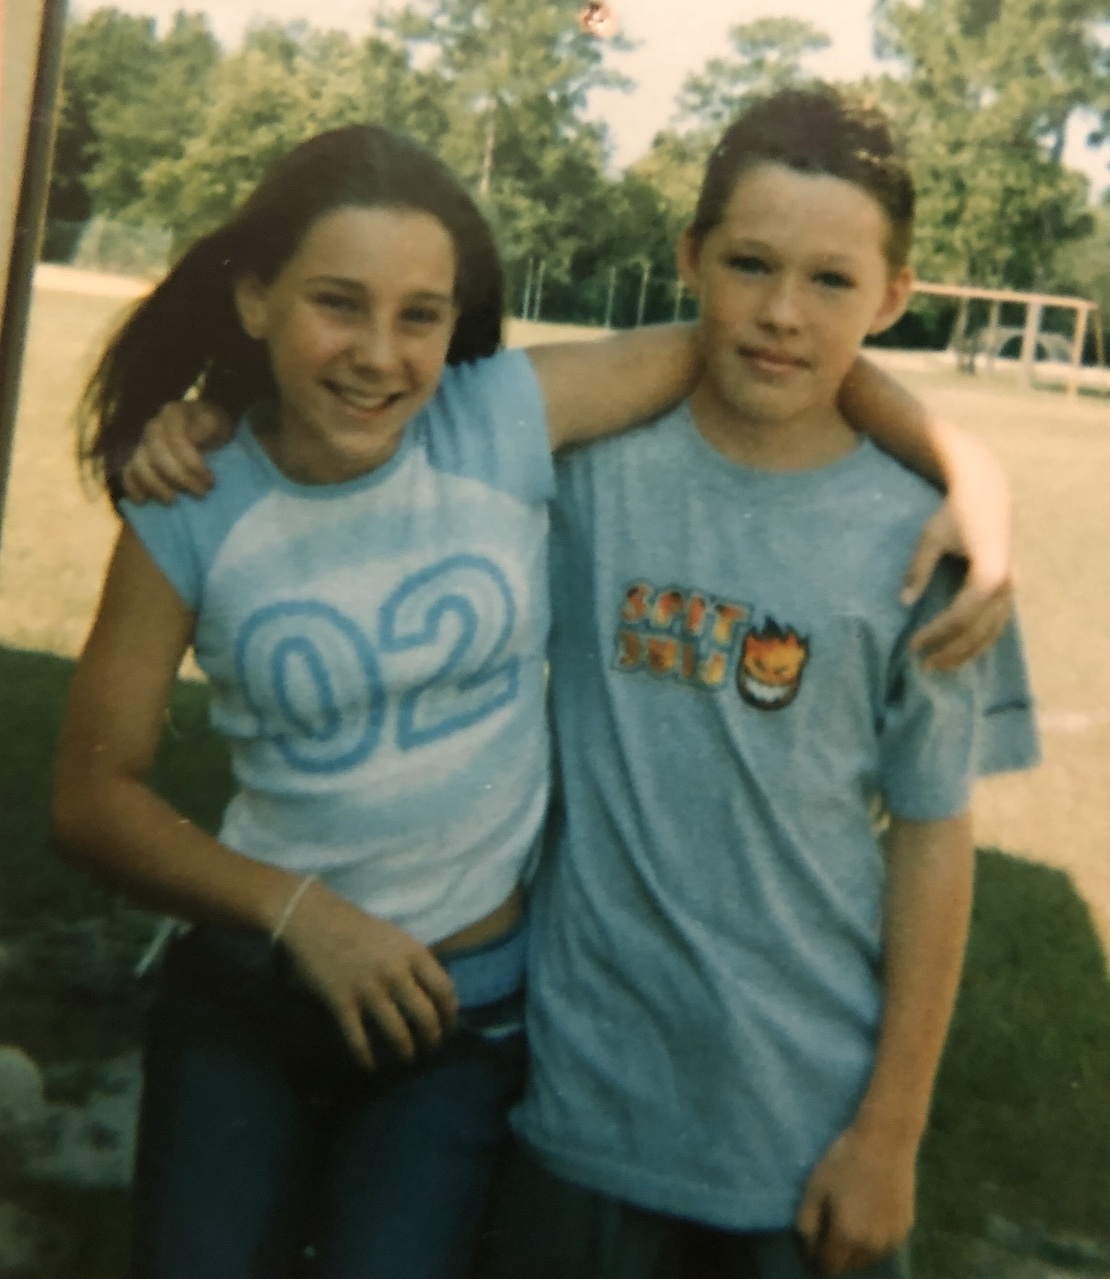 I recently went in search for an old friend. In my search I found this page. It deeply saddens me that Kyle is no longer with us. I was friends with Kyle in elementary and middle school and over the years we both moved and lost contact as many people do with time. We would walk or ride bikes home from school everyday. When we were lucky we would have some extra money to get snacks and slurpees at 7/11 on the way home. Kyle was such an amazing friend and person to me during that time. I hope it brings his family comfort knowing that he made a positive lasting impact on my life even at such an early age. Thank you Kyle for always making me laugh and making sure I made it home safe from school. Your smile brightened my day. Rest In Peace old friend your beautiful soul will never be forgotten.